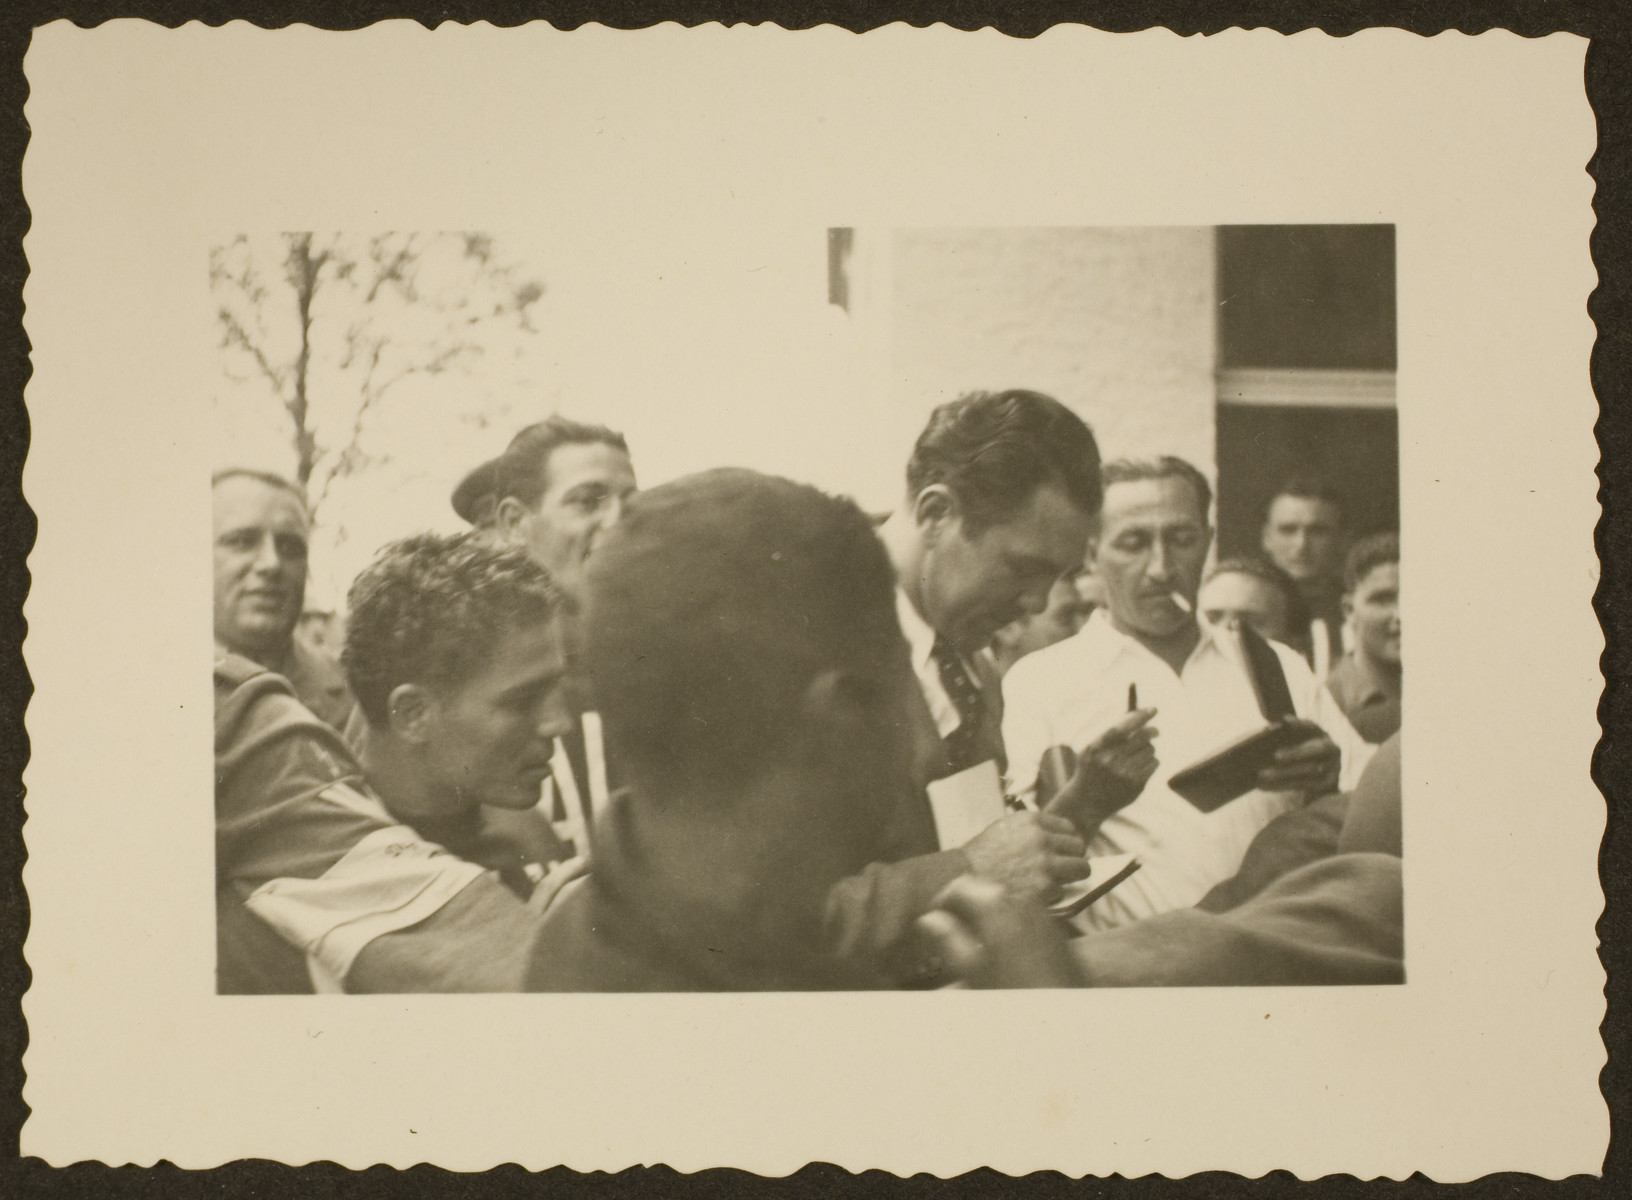 Max Schmeling signs autographs during the Berlin Olympics.